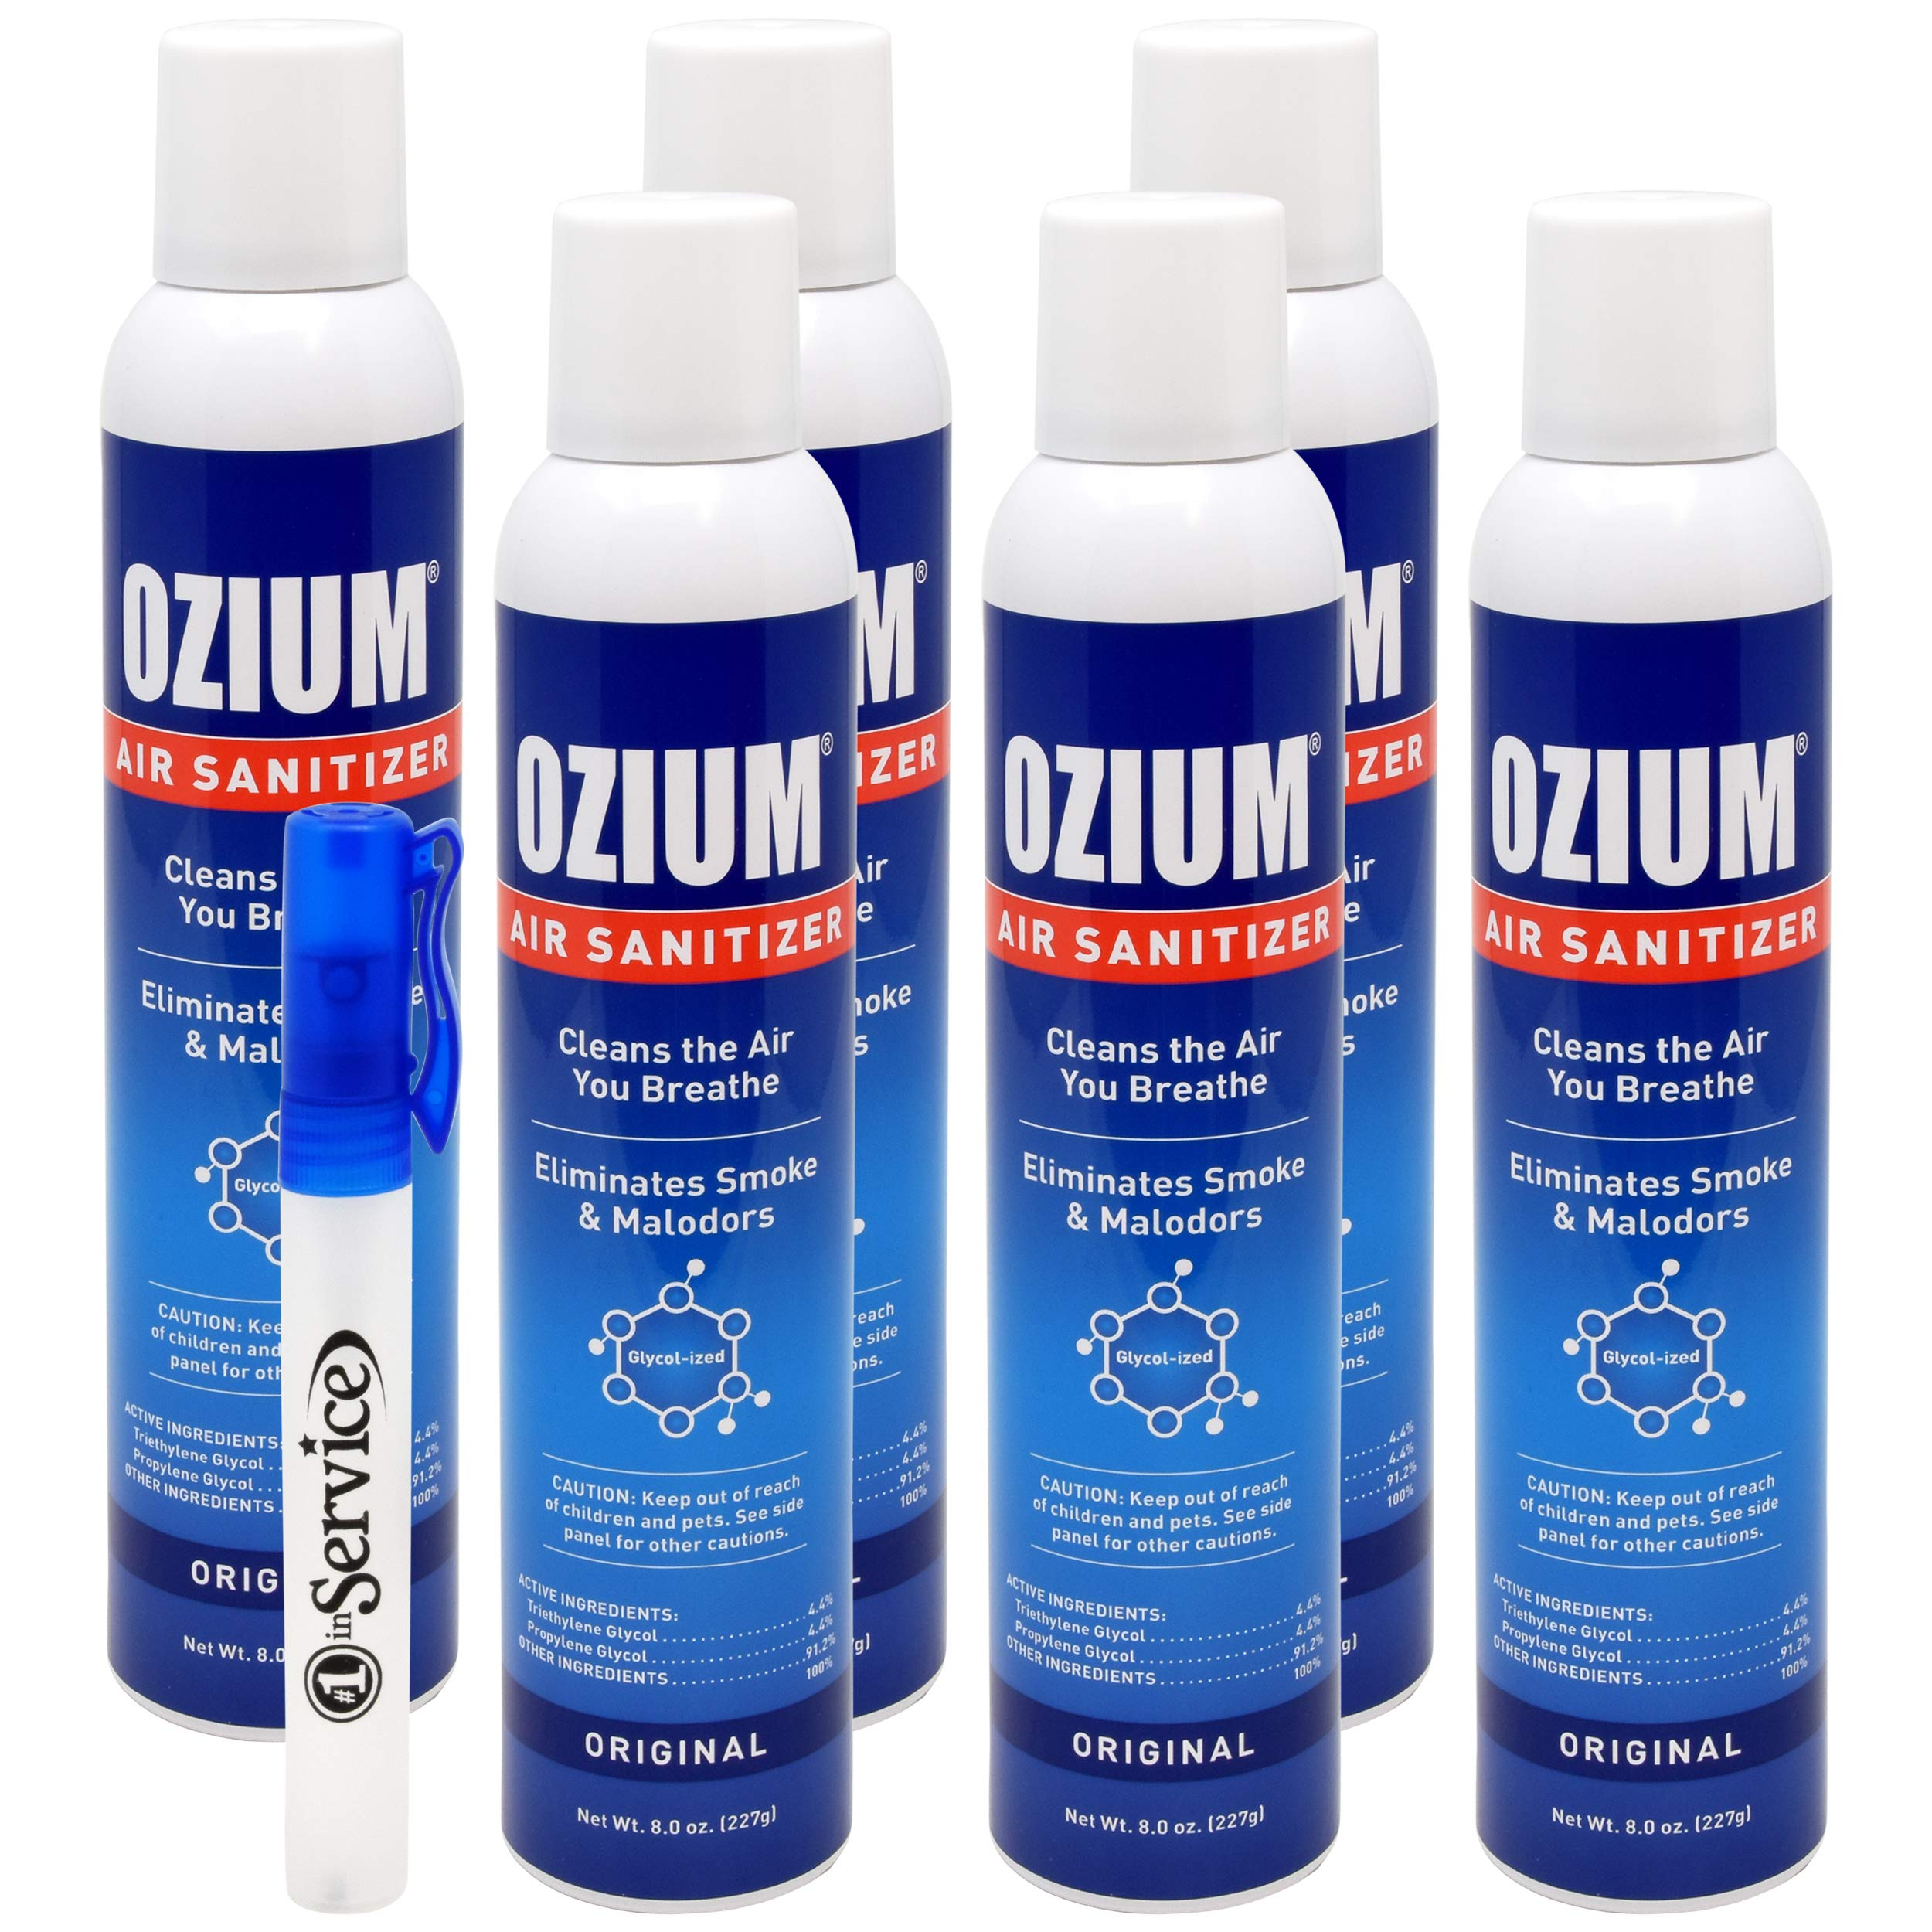 Ozium Air Sanitizer Reduces Airborne Bacteria Eliminates Smoke & Malodors 8oz Spray Air Freshener, Original (6 Pack) Hand Sanitizer Included by Ozium